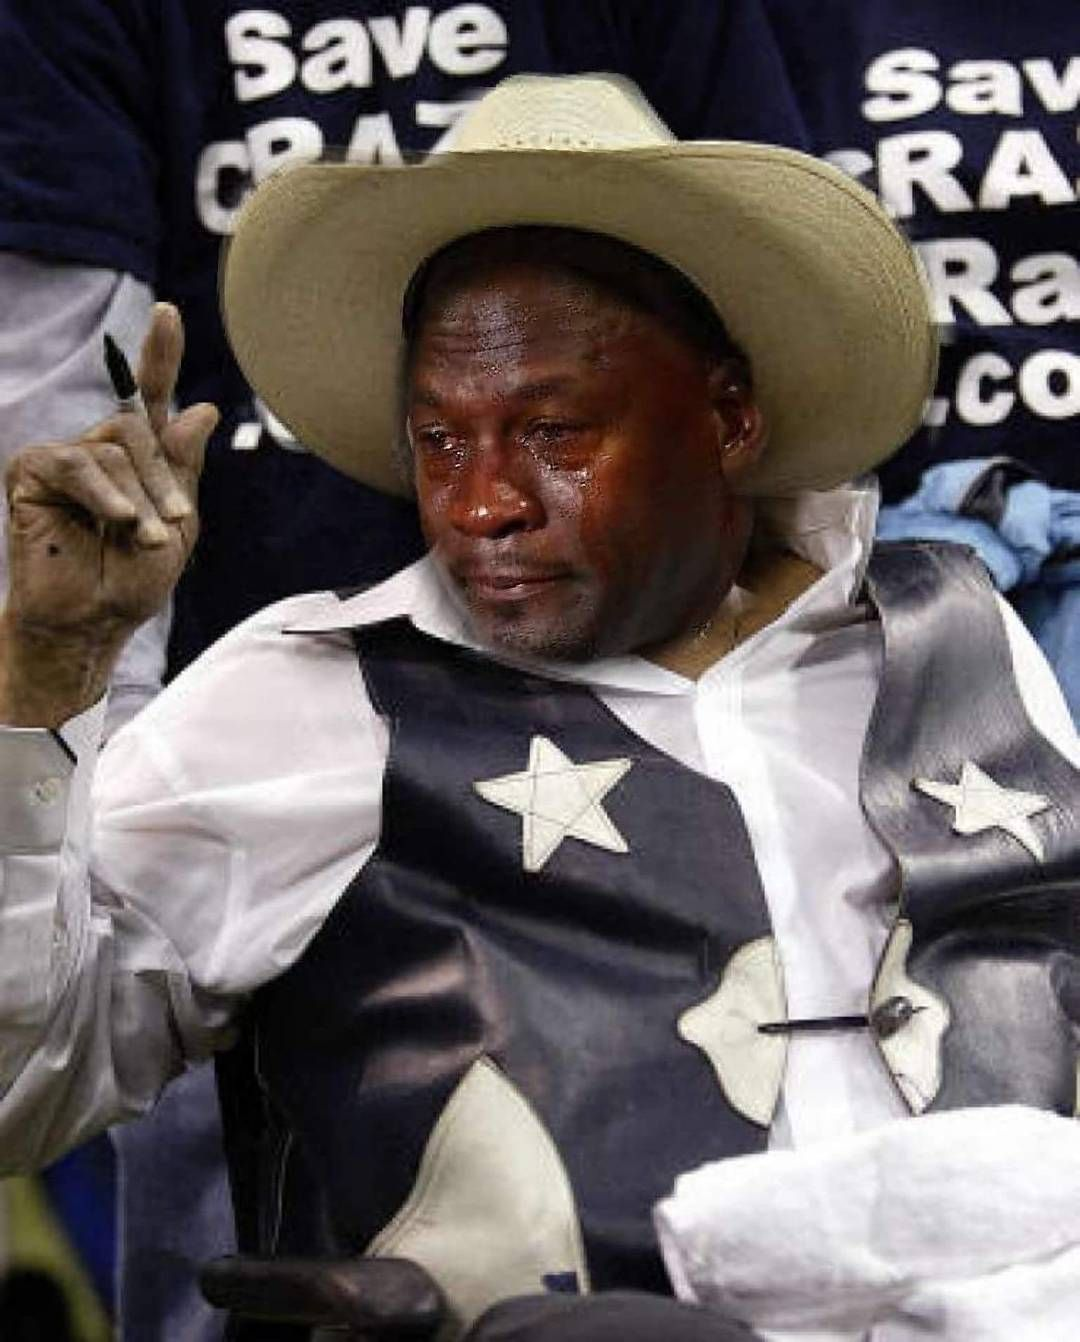 Cowboy fans be like..... cryingjordan cryingjordanface